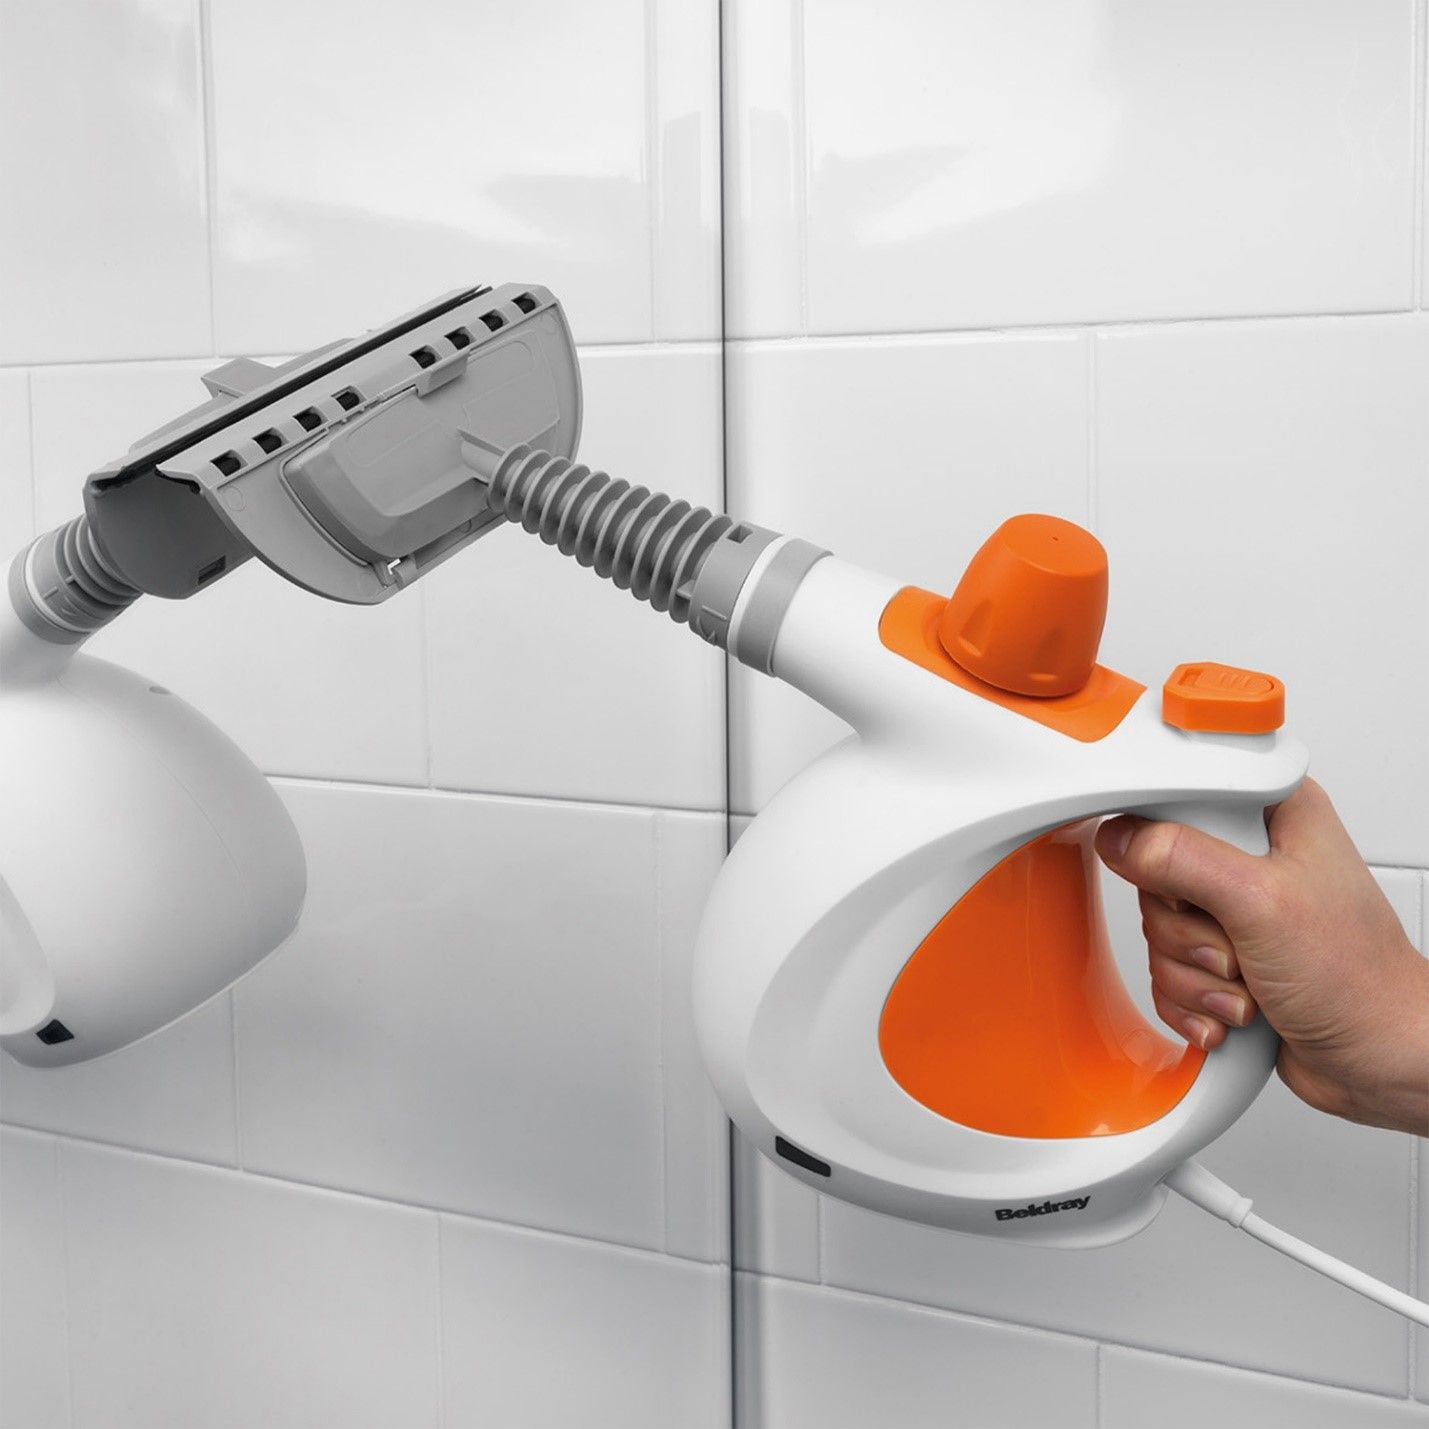 Beldray portable steam cleaner